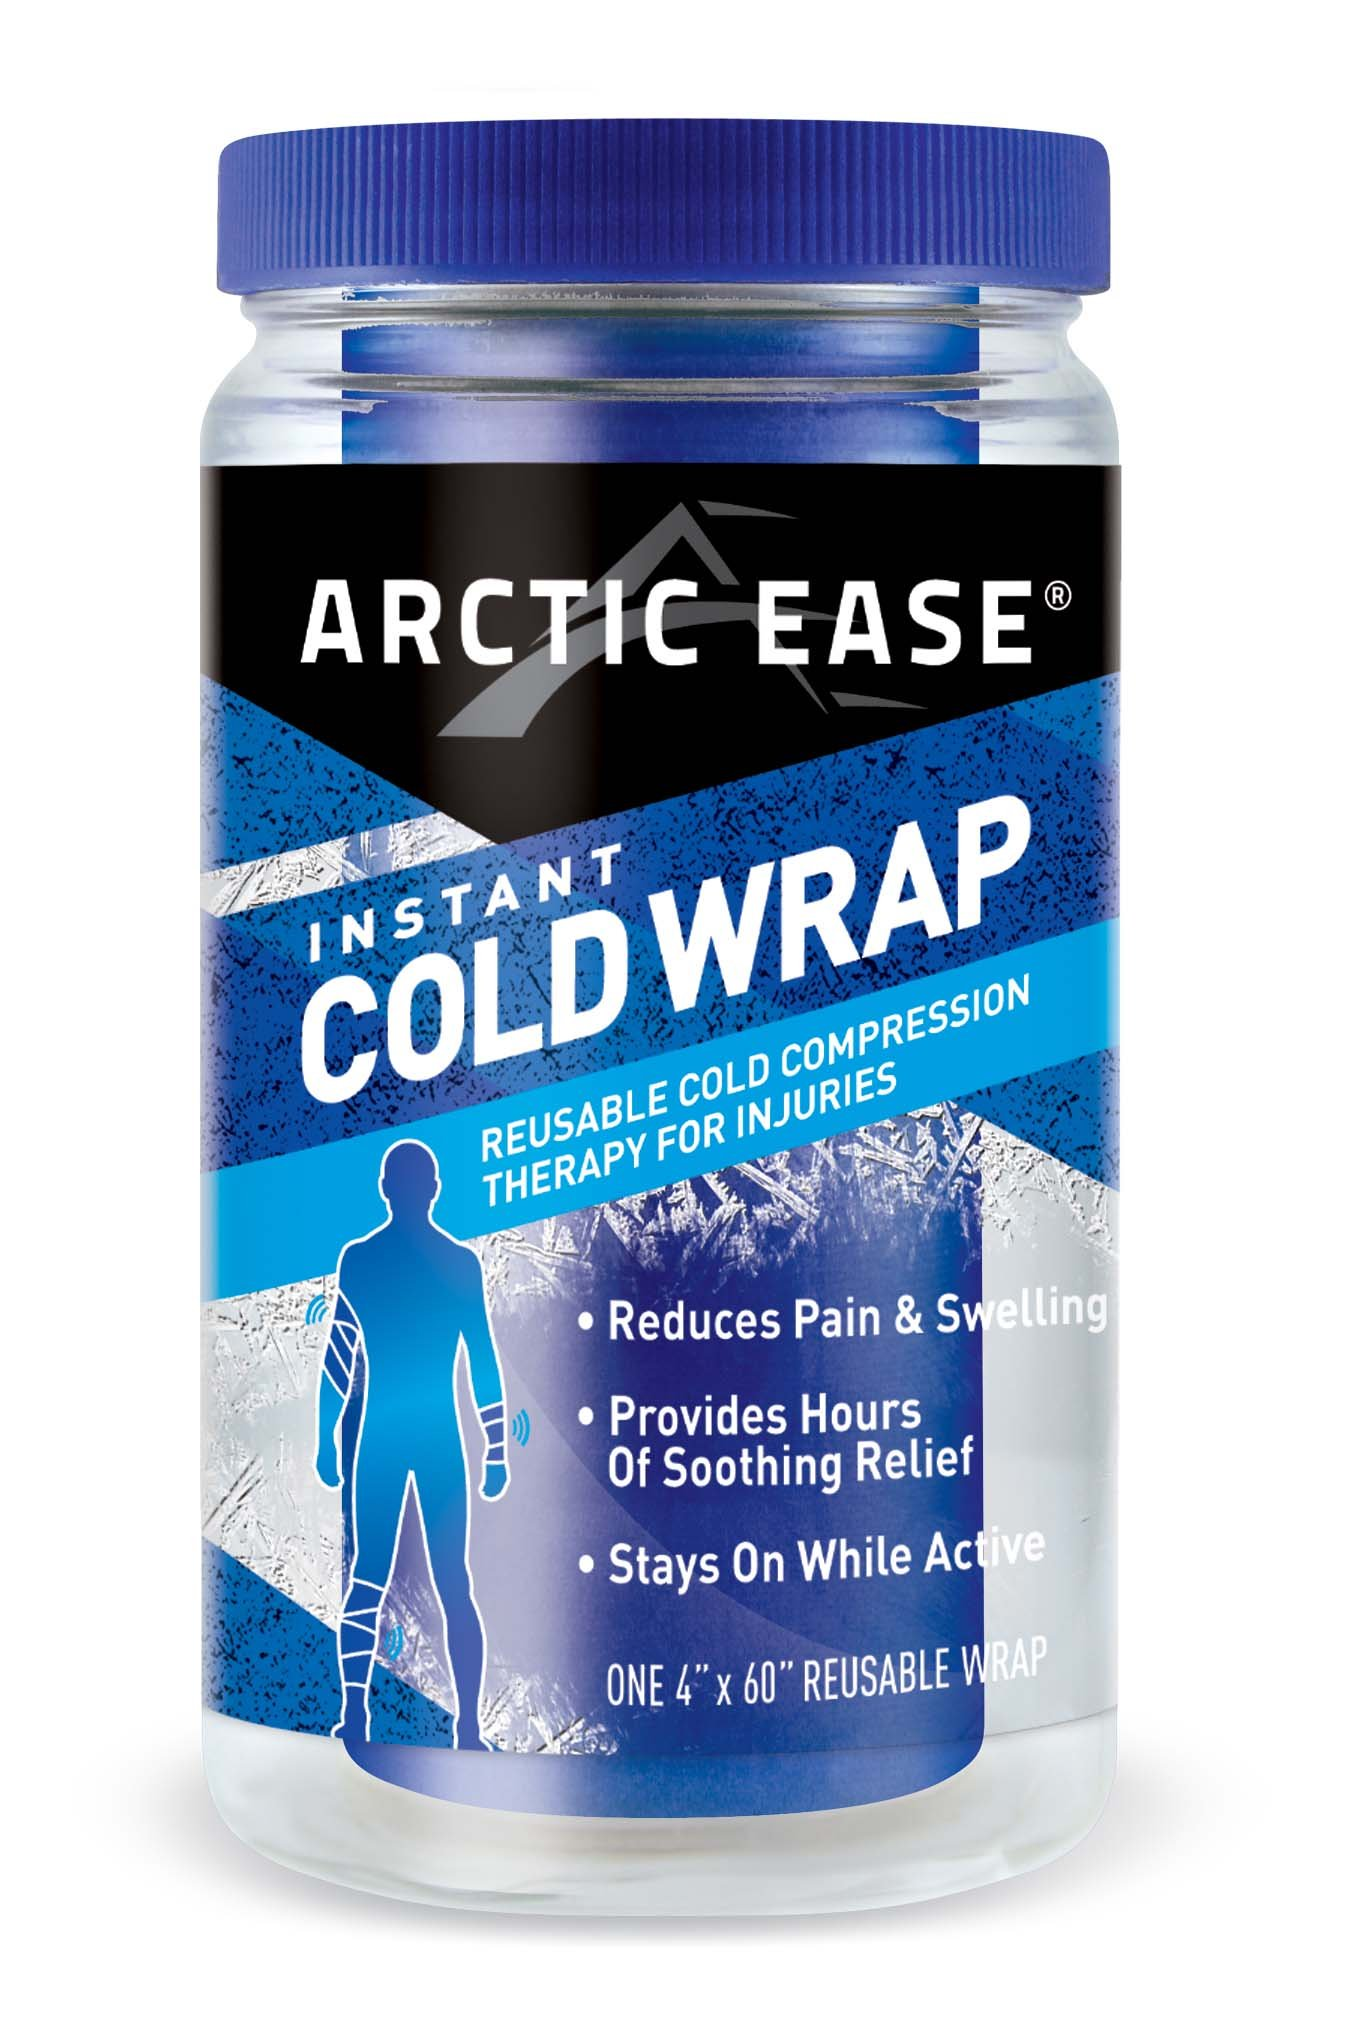 """Arctic Ease Reusable Instant Cold Wrap, Large Size, Measures 4"""" X 60"""", Sized for Large Joints/Muscles Including Hamstring, quads, Thigh, Shoulders, Knees and Hips, Blue"""